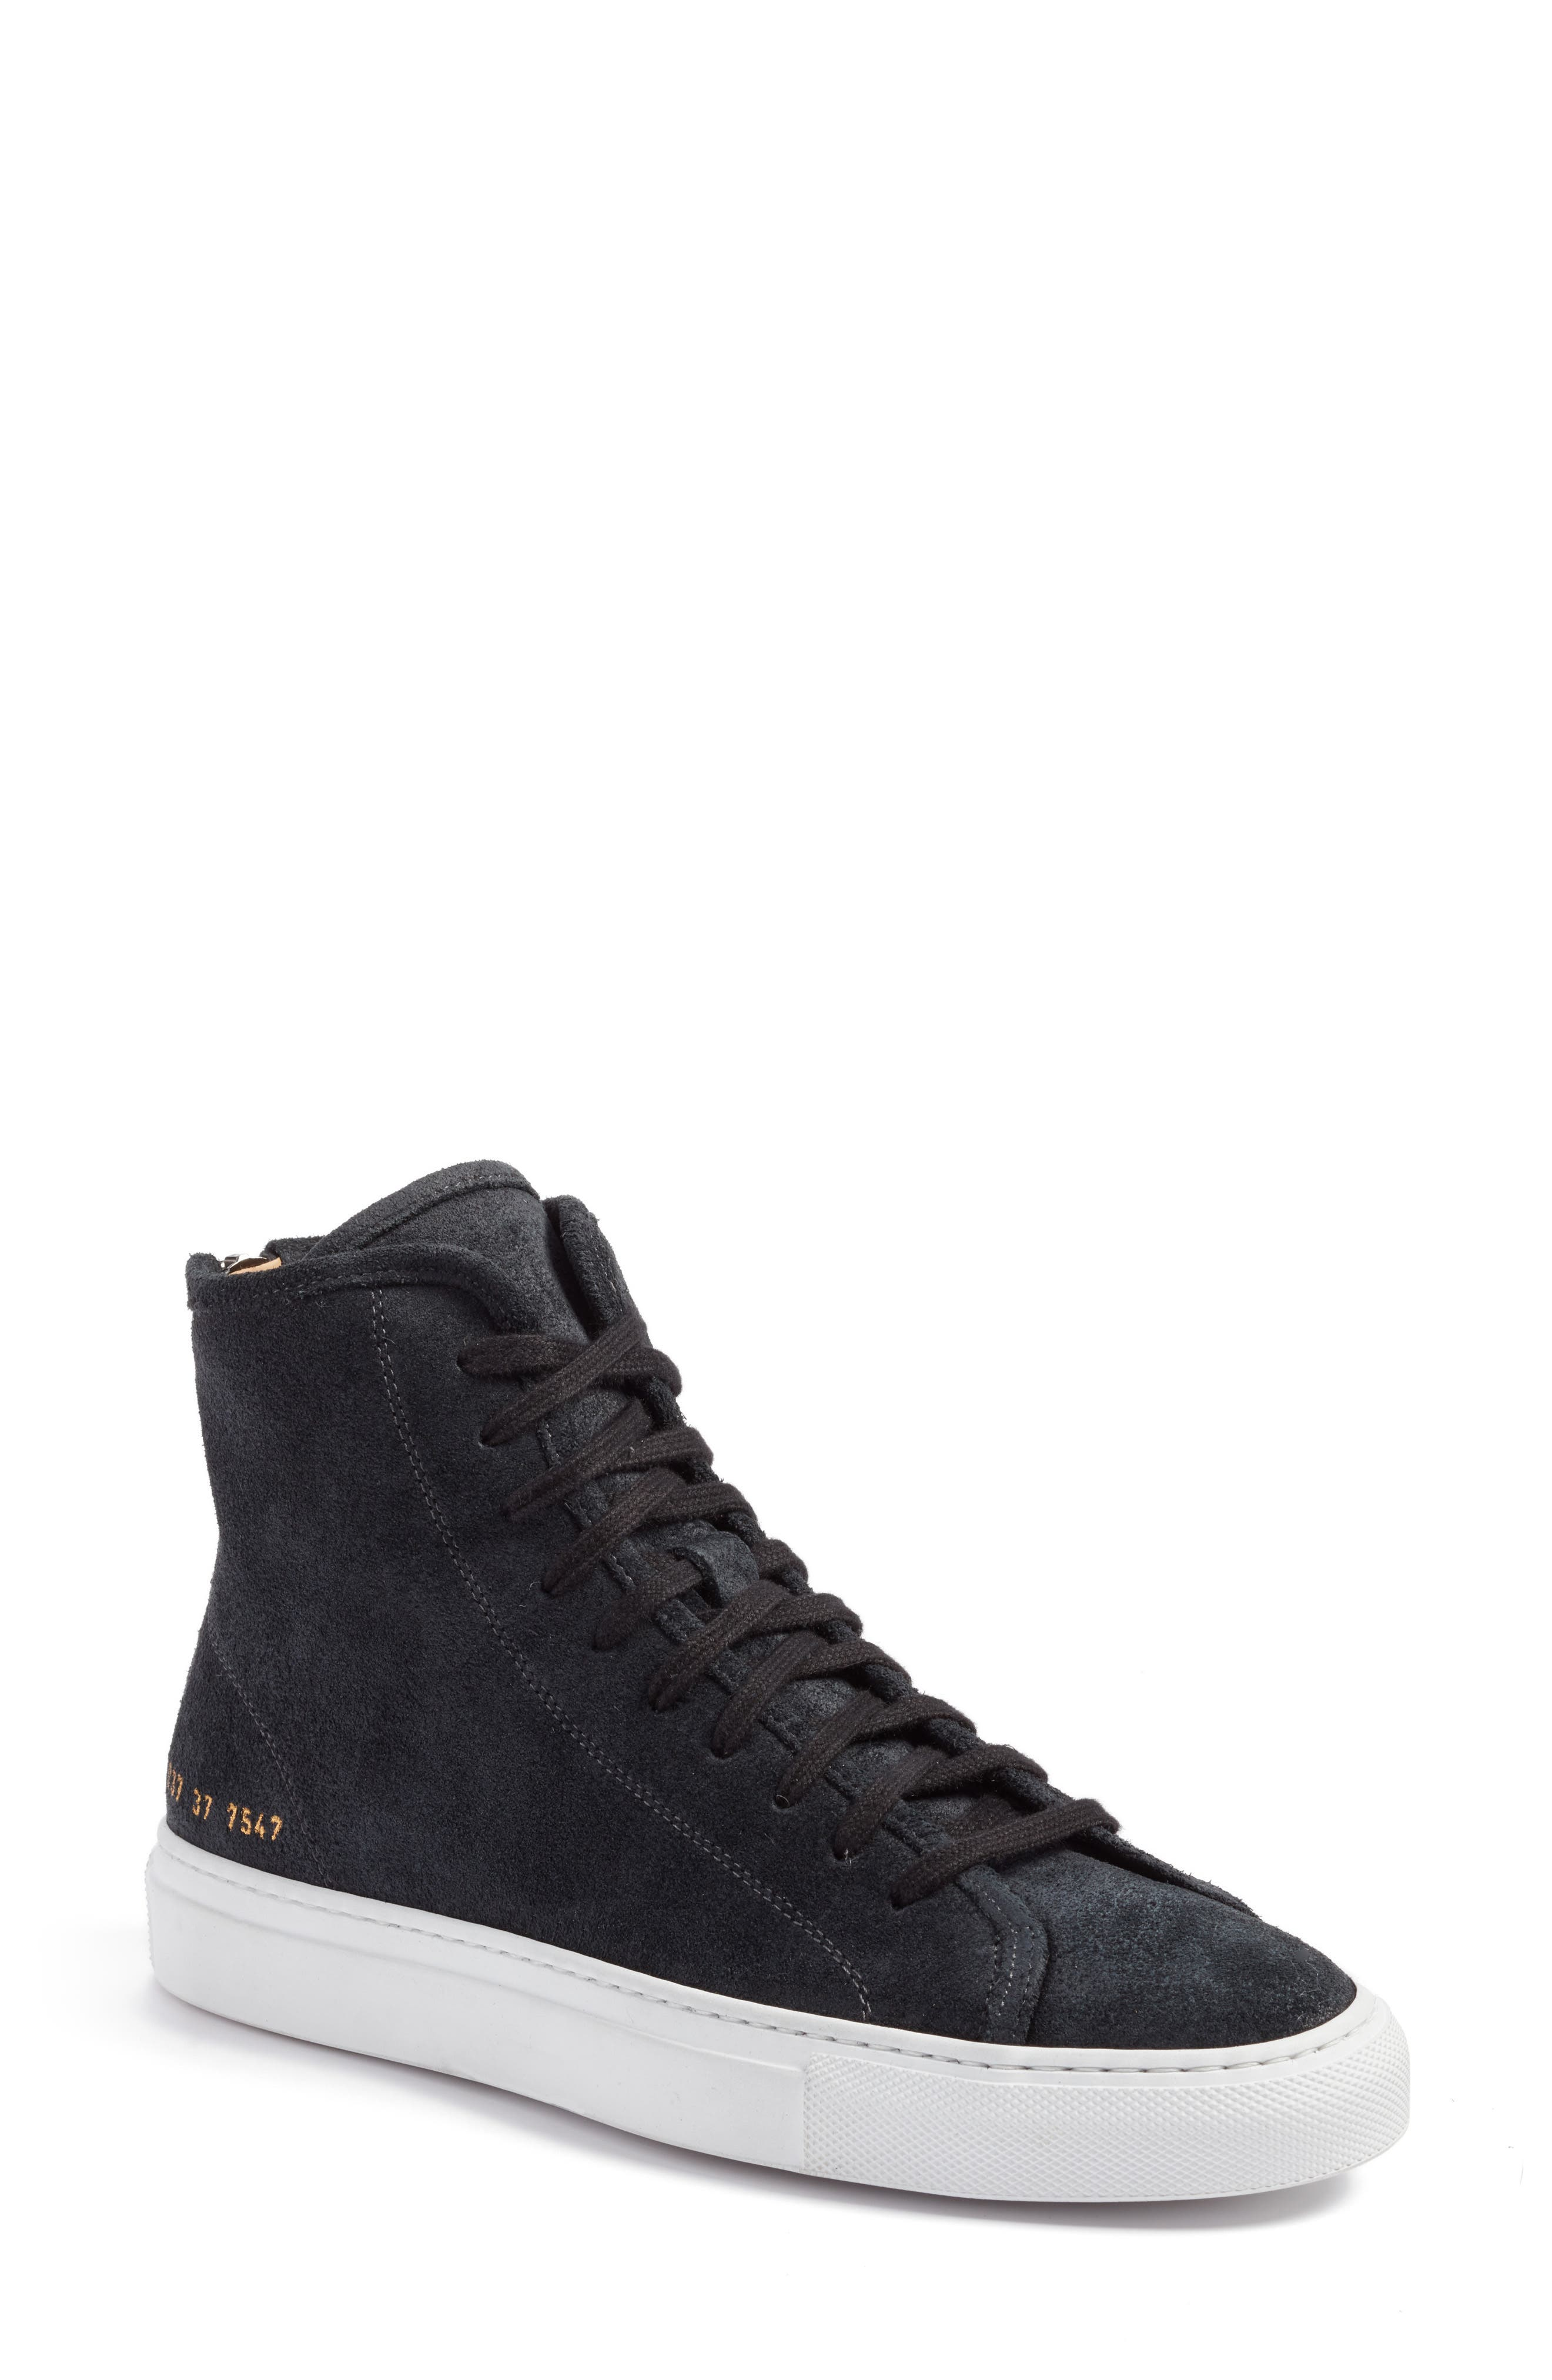 Alternate Image 1 Selected - Common Projects Tournament High Top Sneakers (Women)